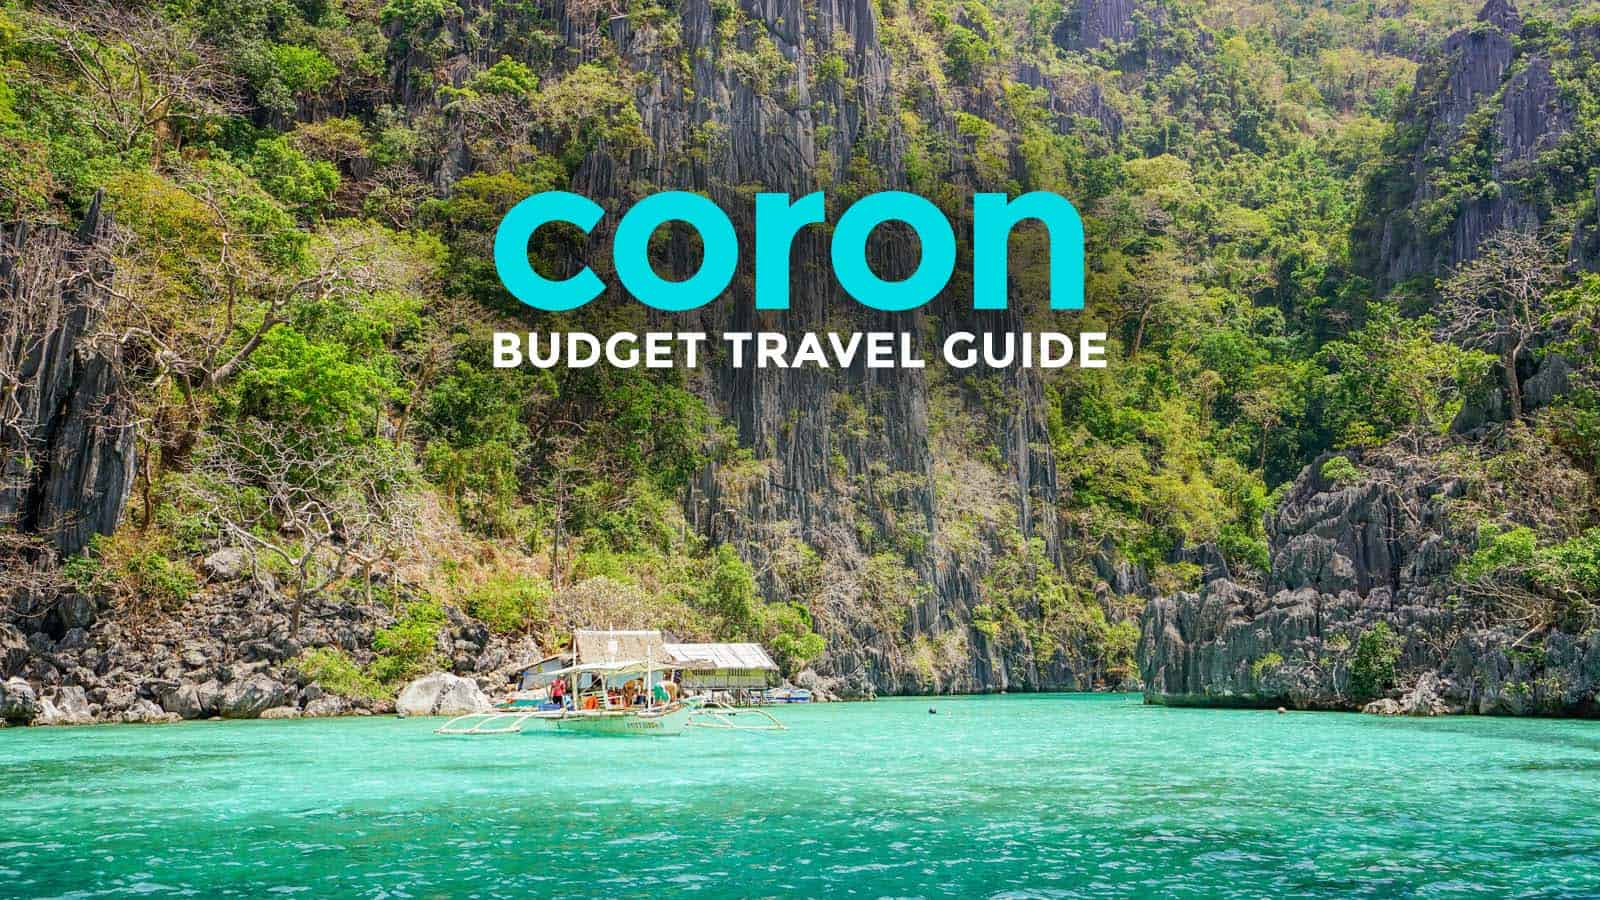 Updated! CORON PALAWAN: Budget Travel Guide & Itinerary